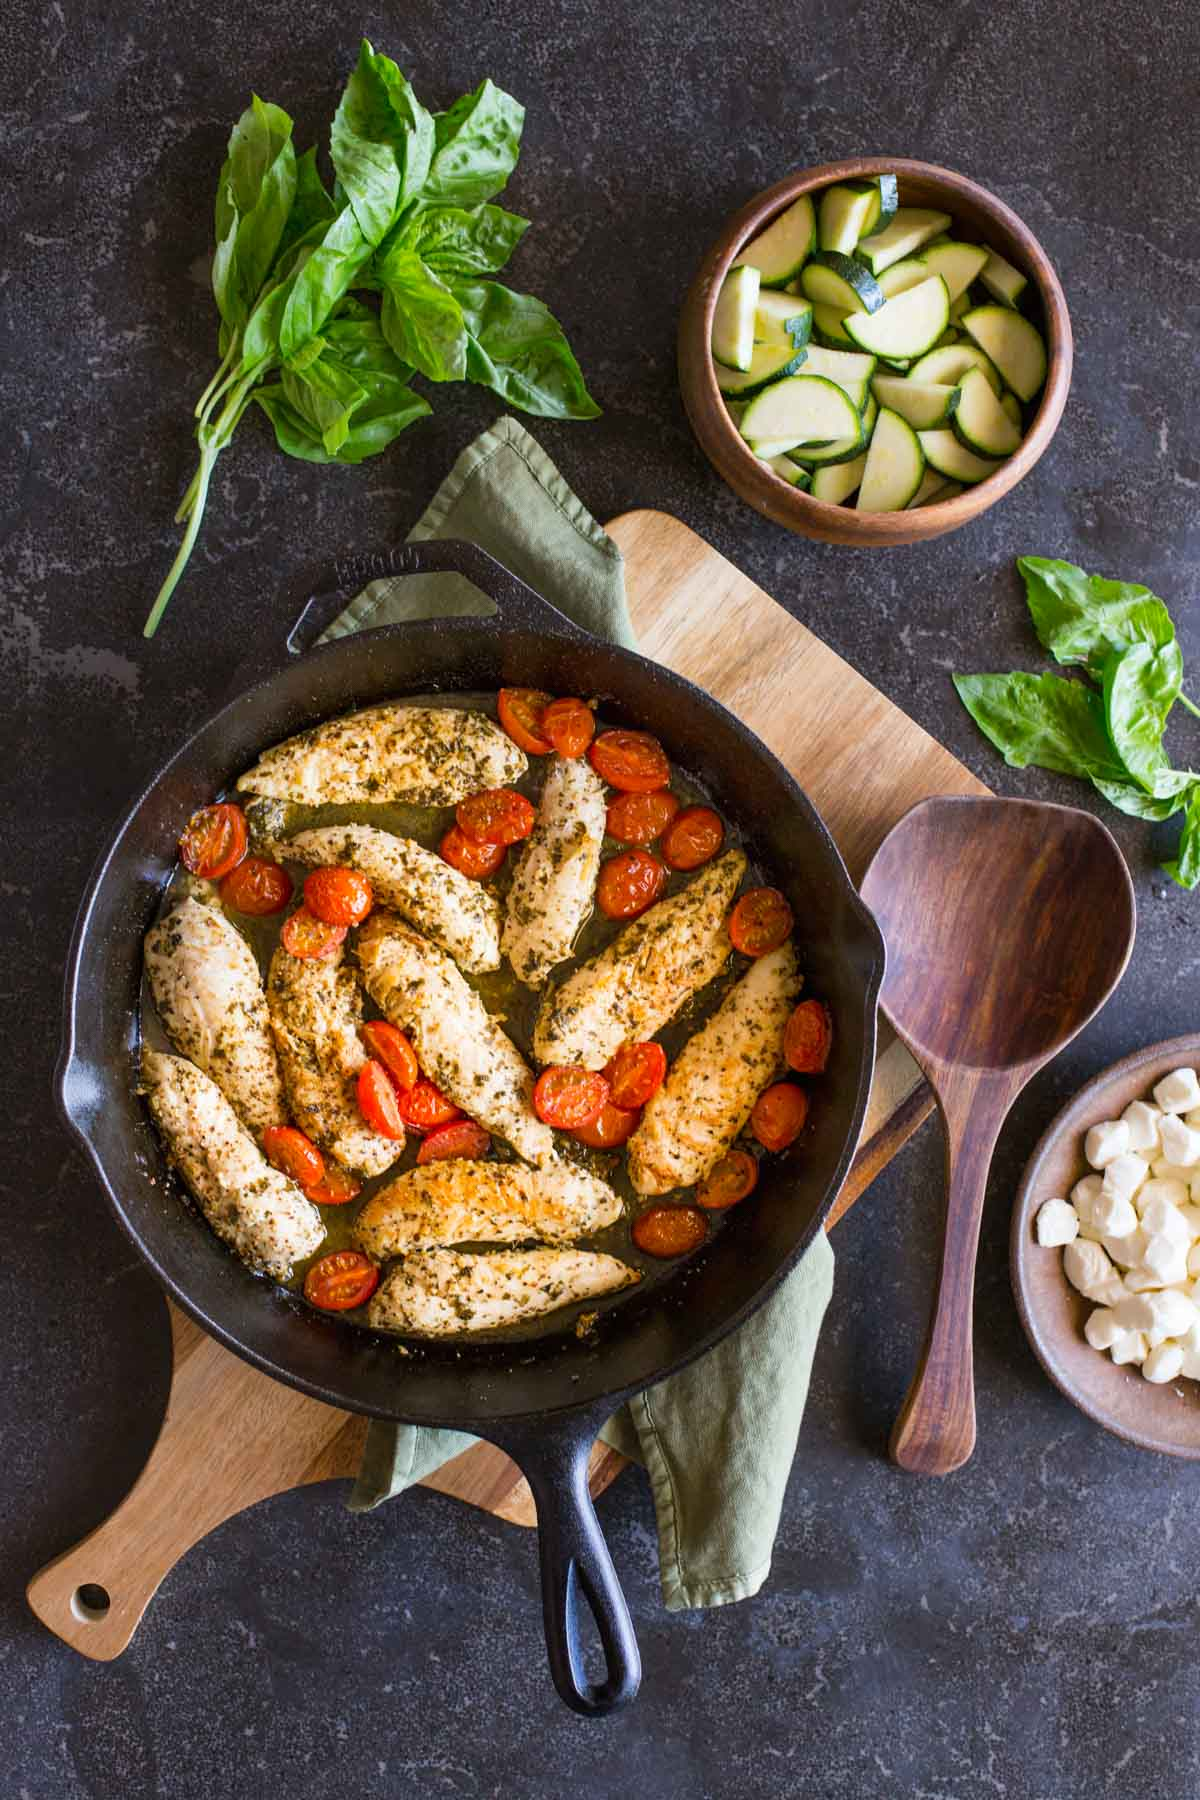 Cooked chicken and caramelized cherry tomatoes in a cast iron skillet, with some fresh basil, a bowl of sliced zucchini, a bowl of fresh mozzarella pearls and a wooden spoon next to the skillet, all to make the Pesto Chicken Skillet.